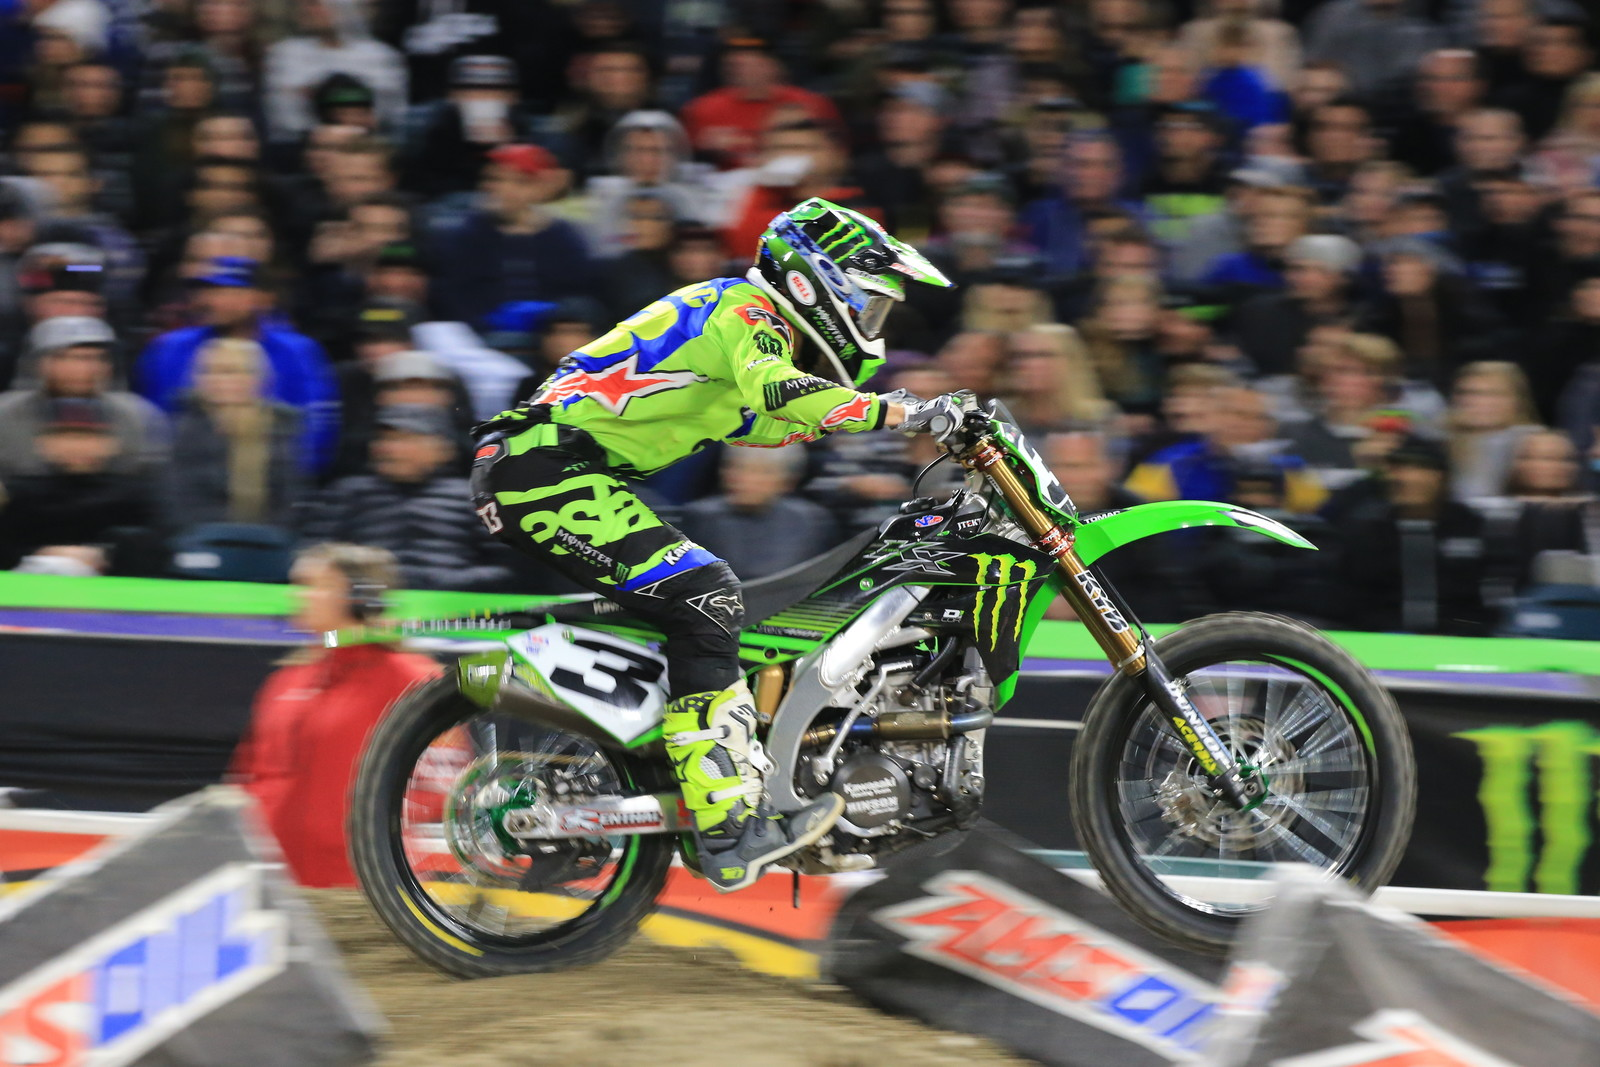 Eli Tomac on his way to the 450 Main Event 2 win.